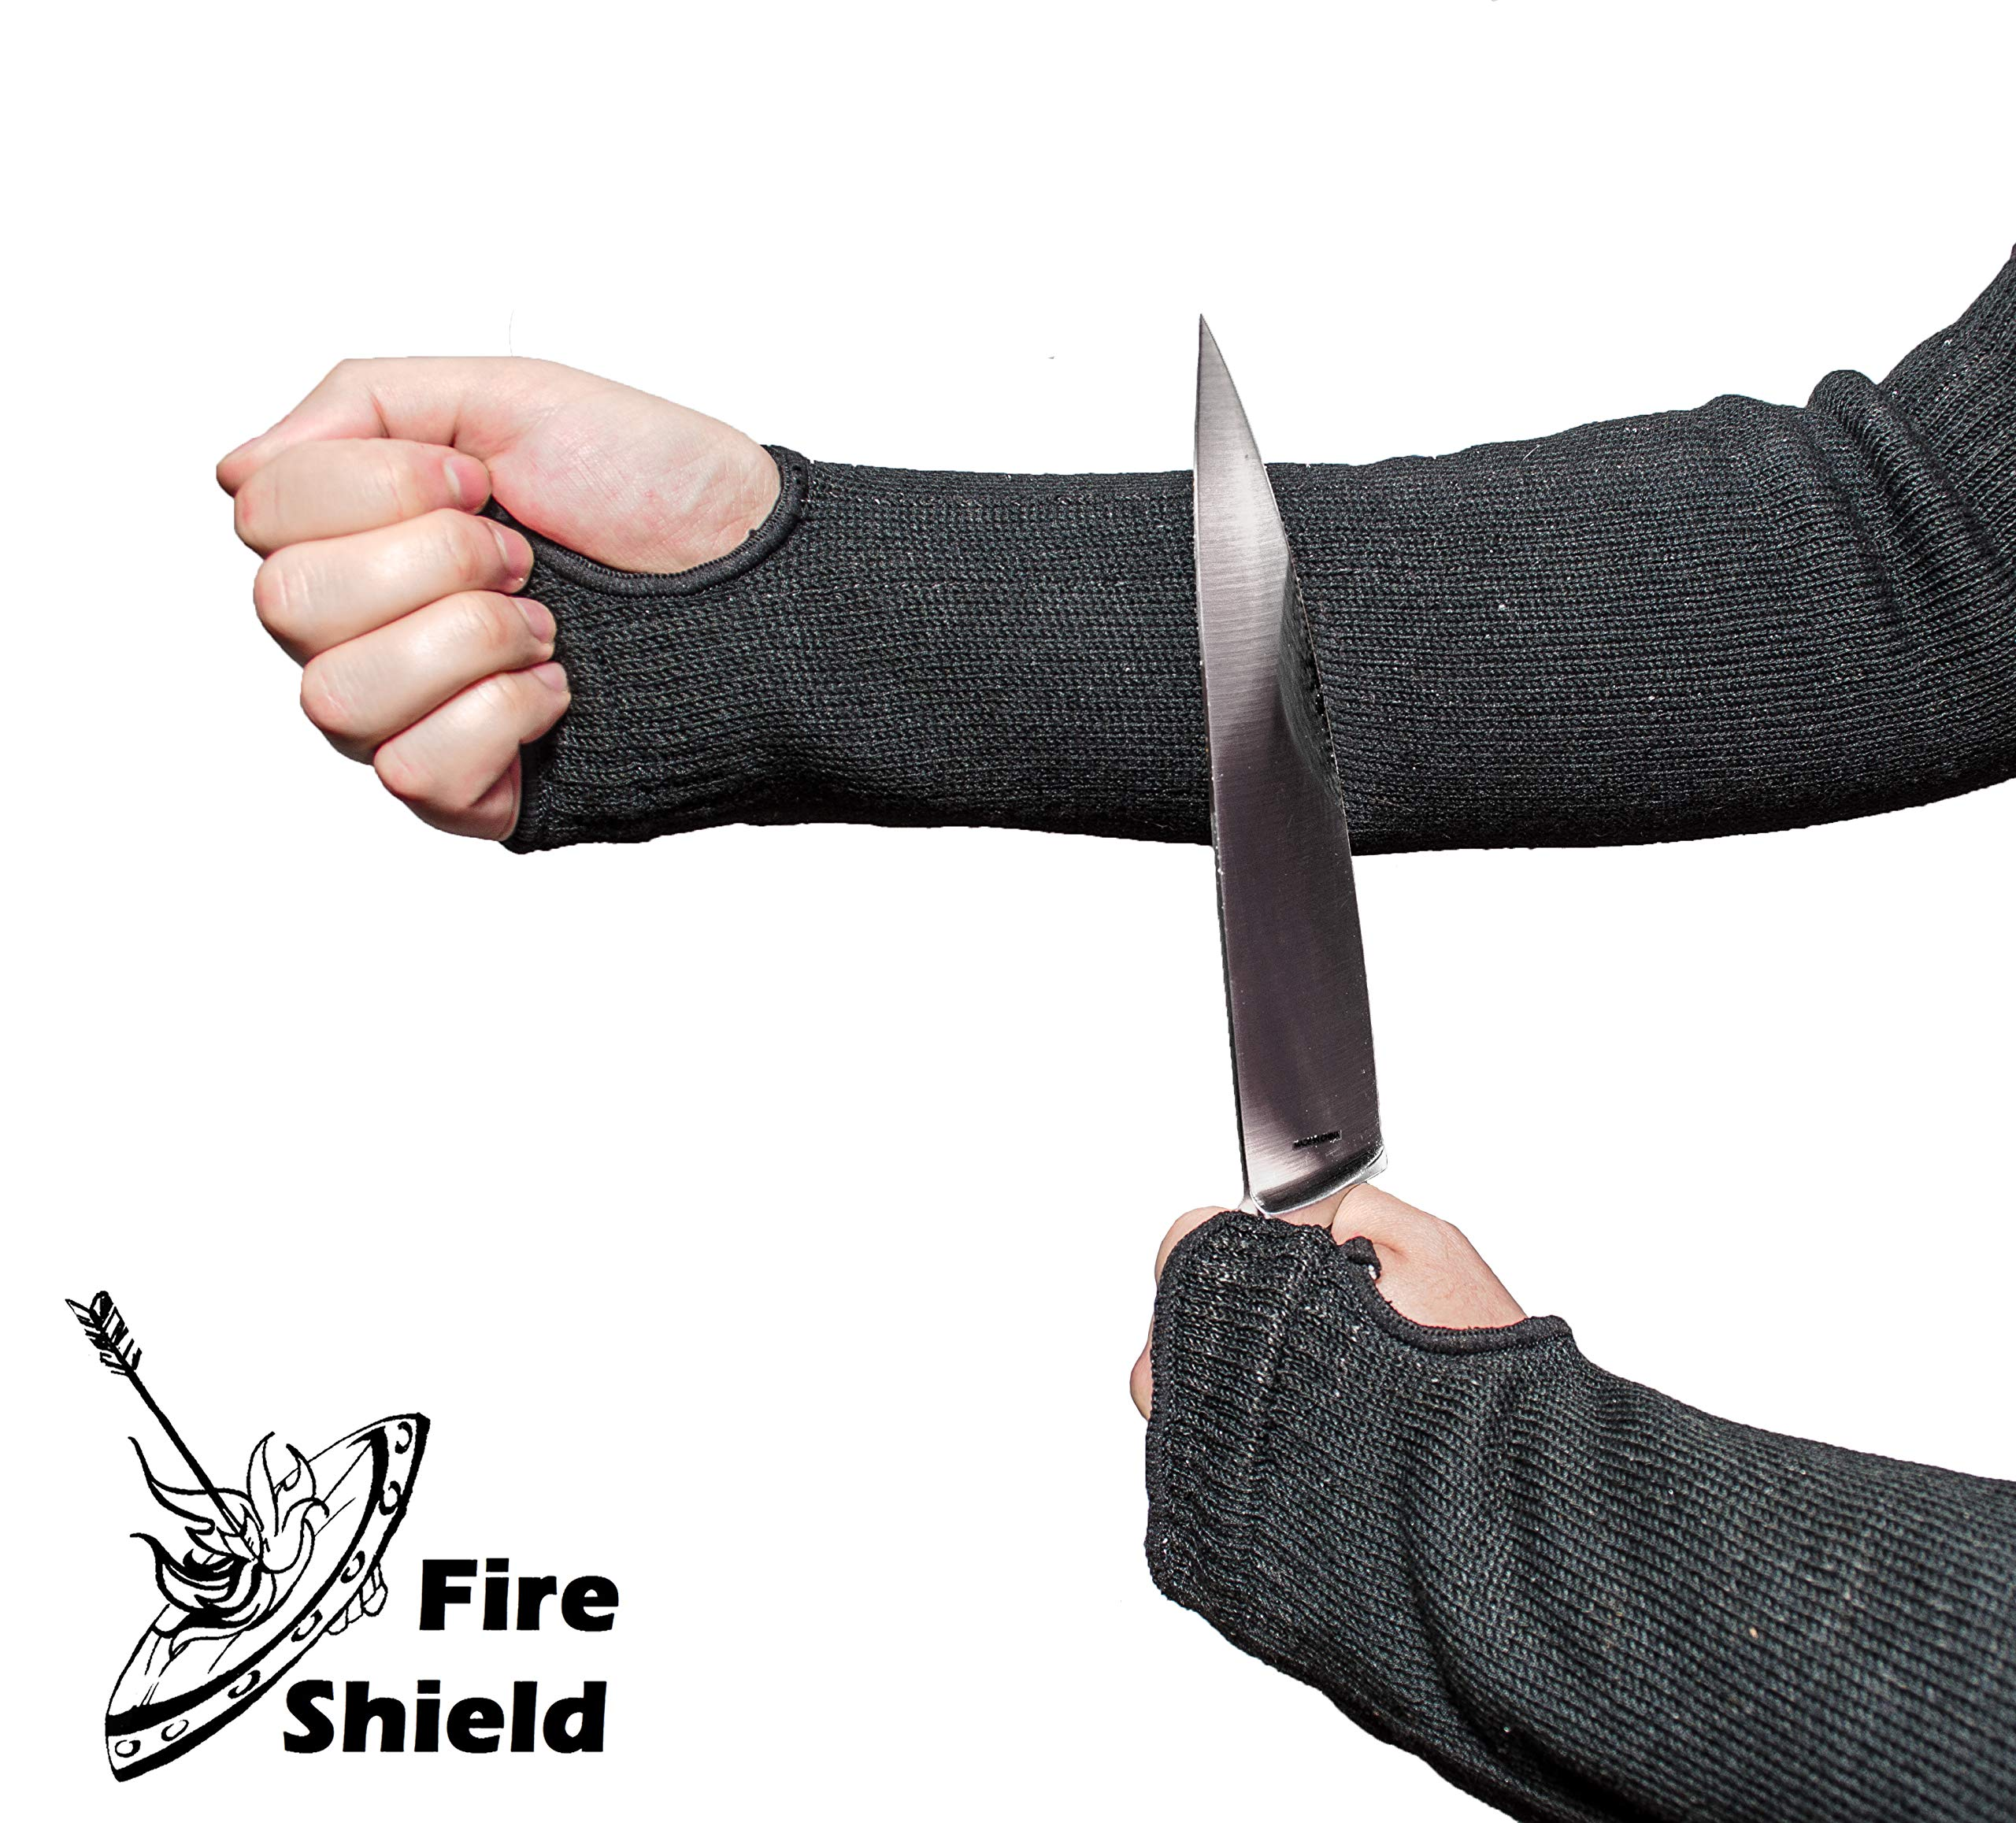 Heat and Cut Resistant Sleeves | 22 in. with Thumb and Finger Holes | Washable, Flexible, Durable | Full Arm Protection for Cooks & Welders | by FIRE SHIELD by Fire Shield (Image #3)